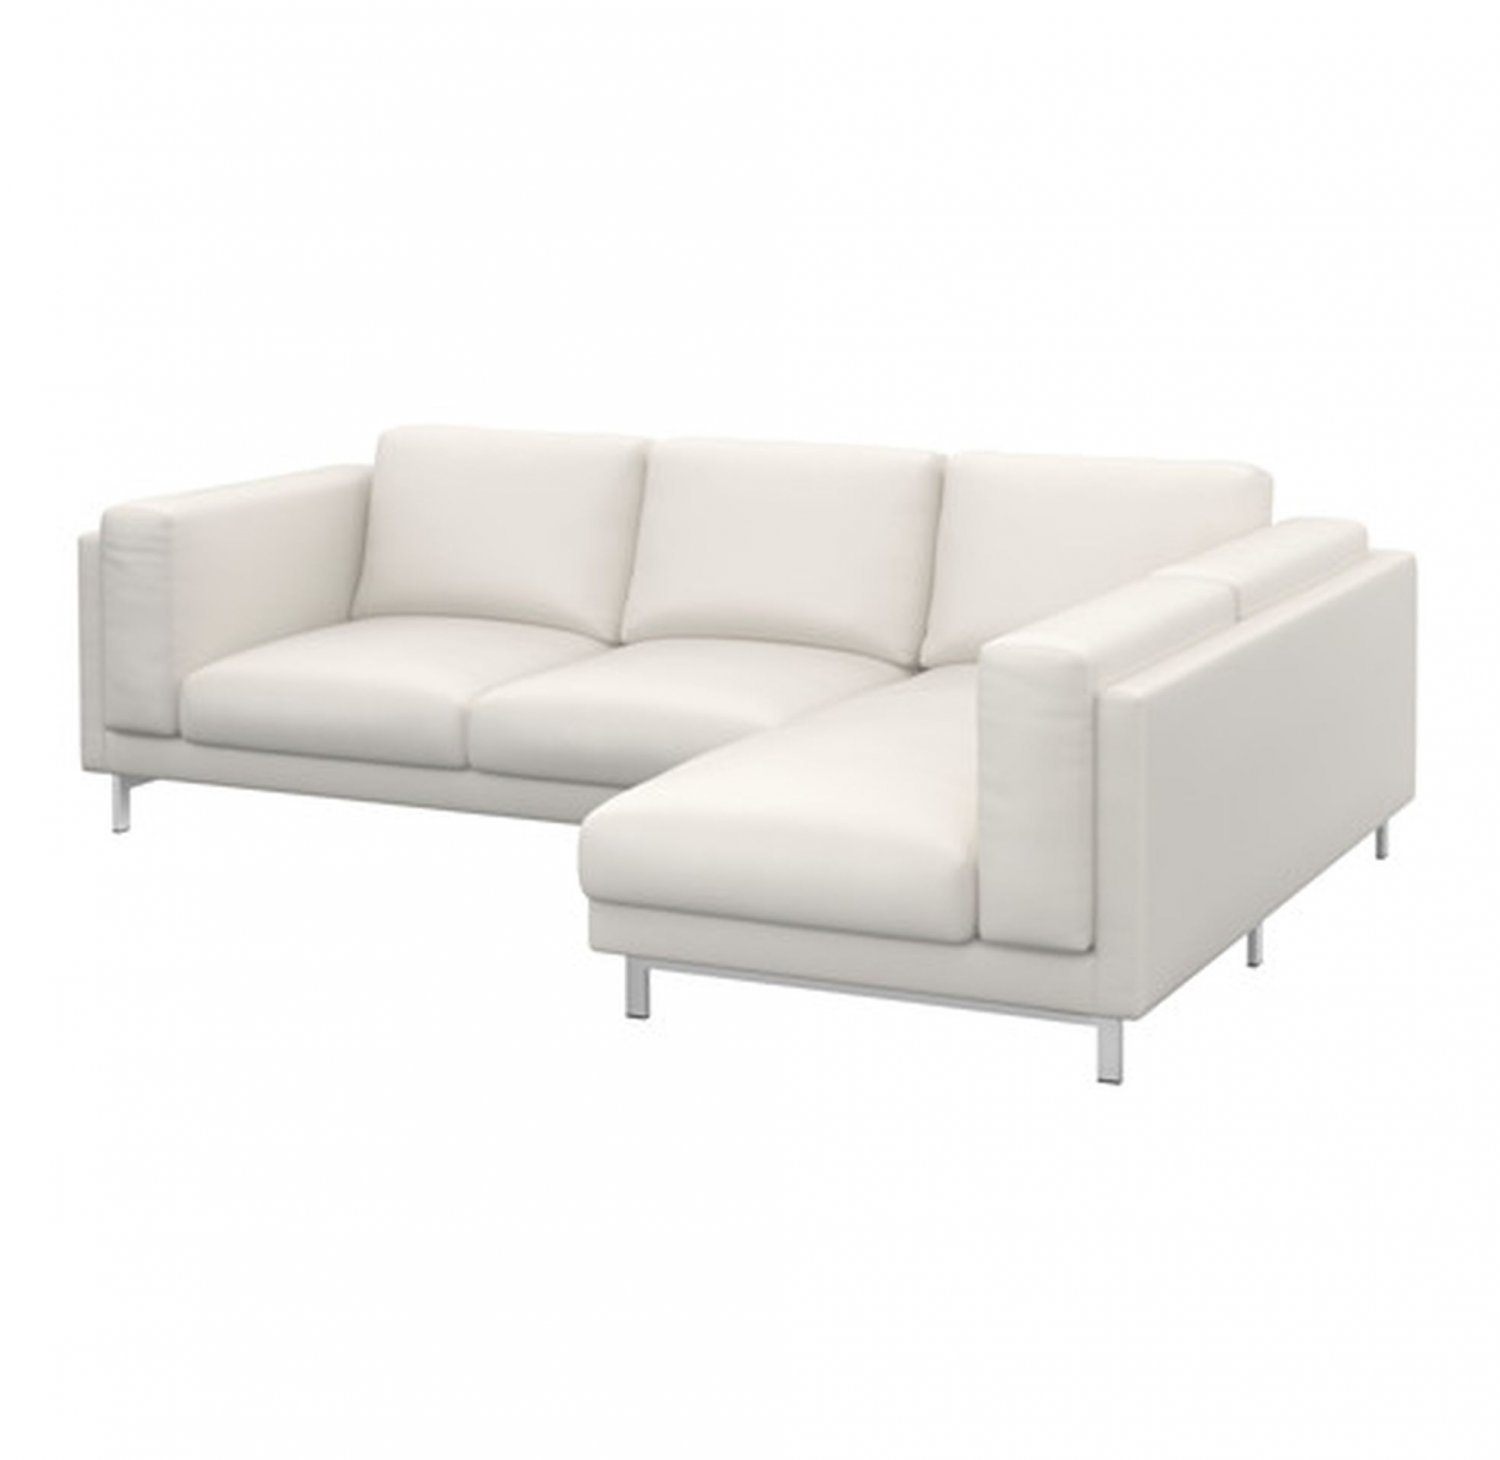 Ikea Sofa Nockeby Test Ikea Nockeby Slipcover Loveseat W Chaise Right Cover